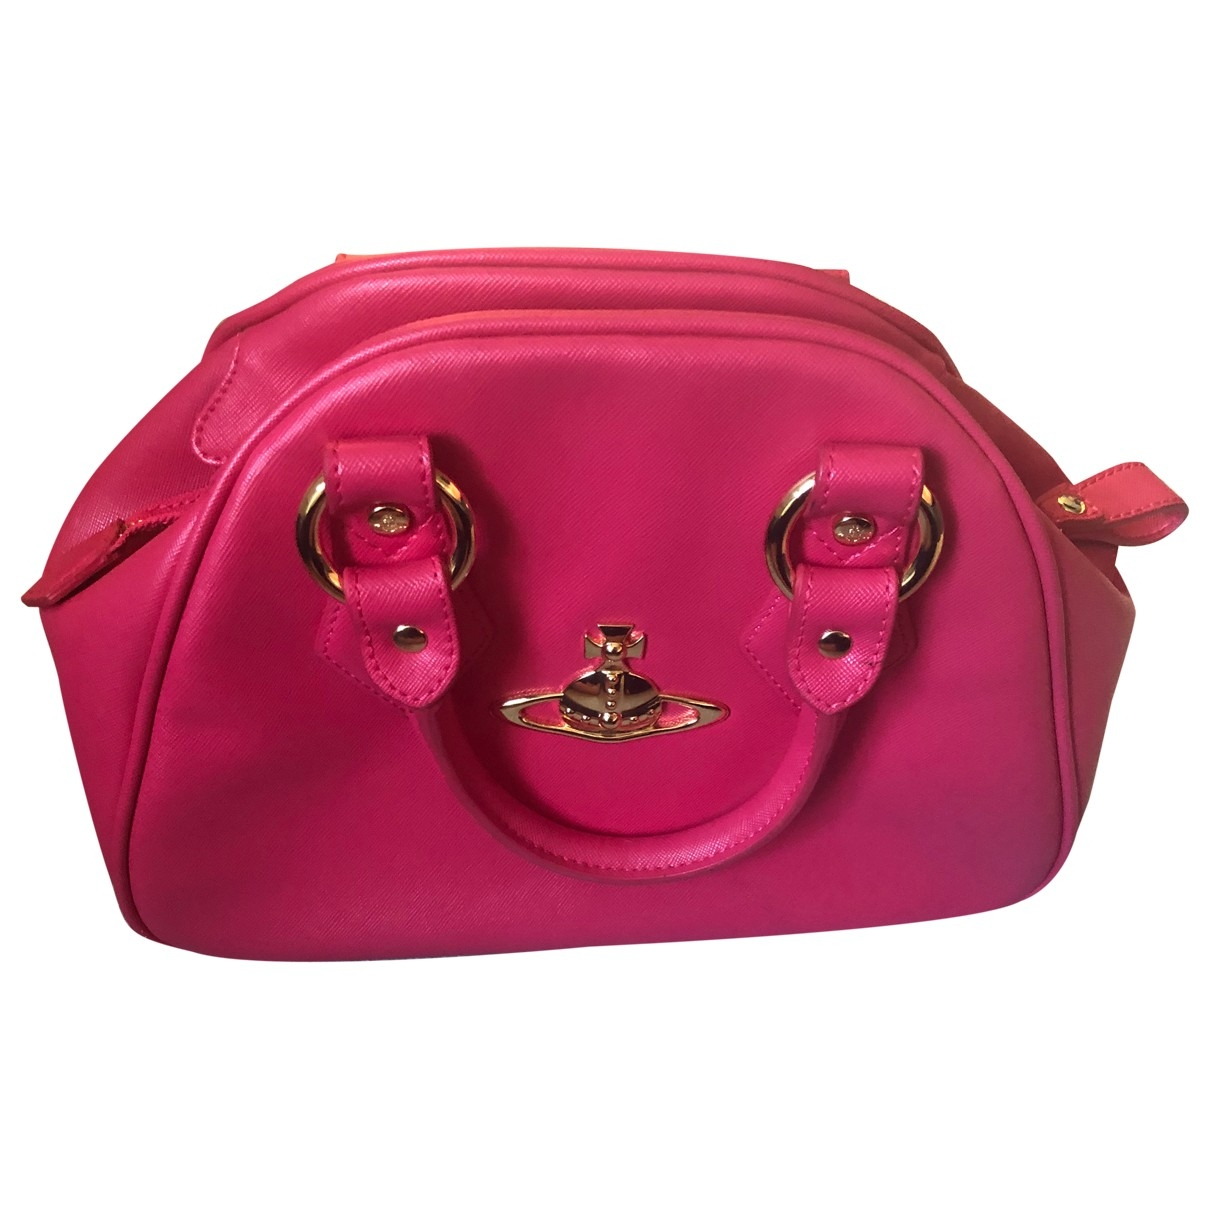 Vivienne Westwood Anglomania \N Pink handbag for Women \N